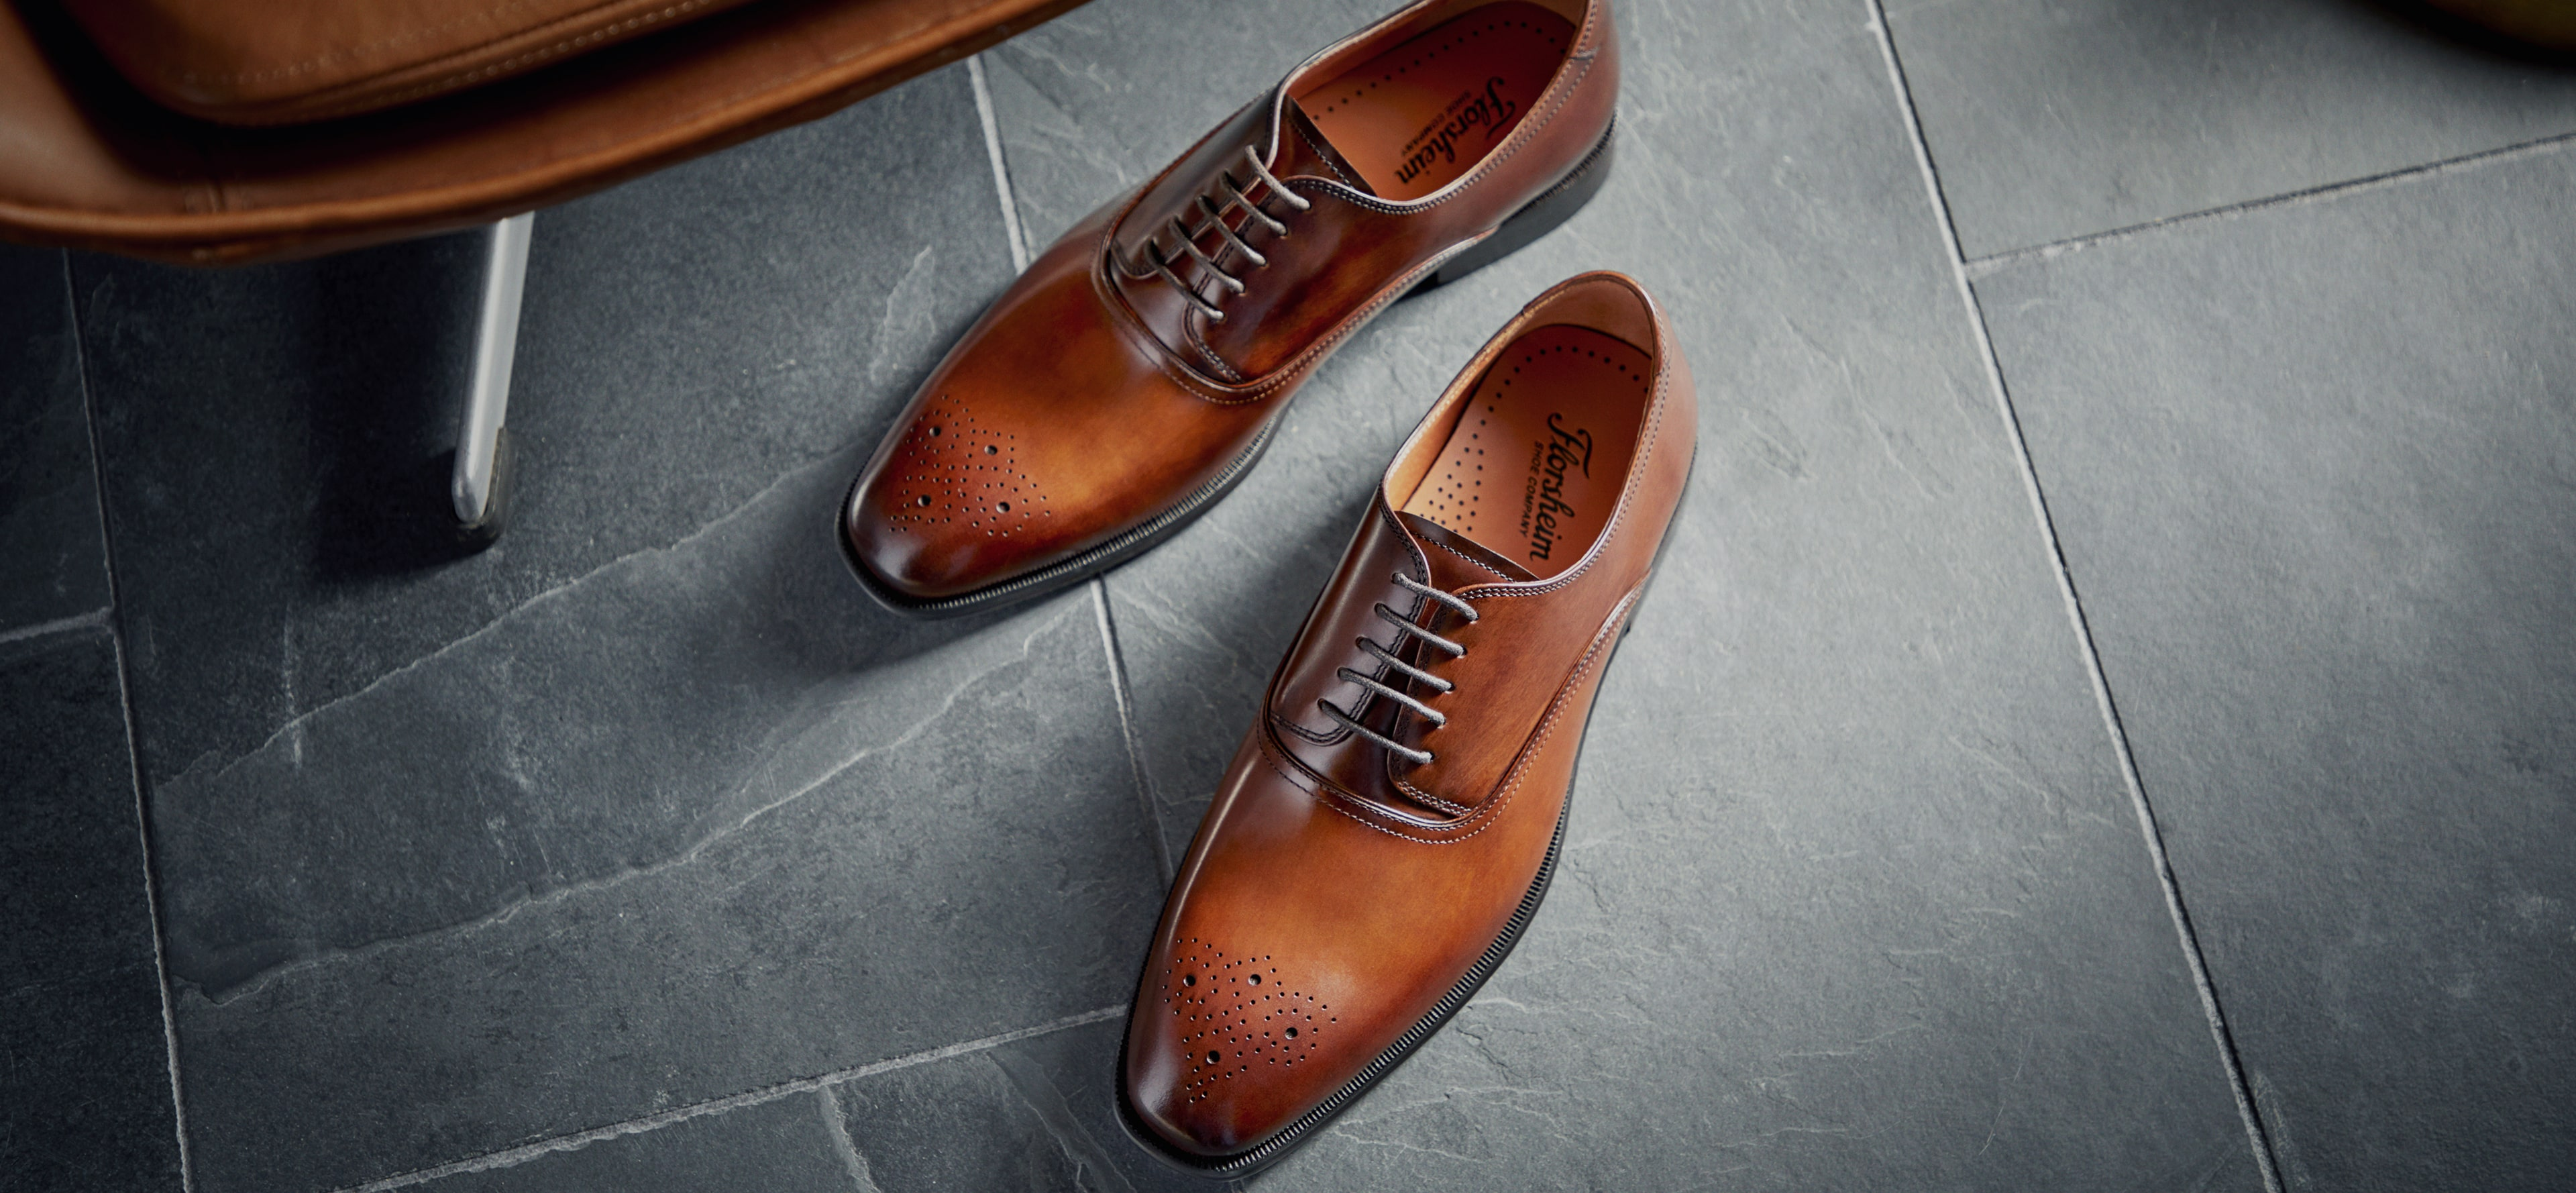 The featured shoe in this image is the Highland Canvas Plain Toe Oxford in Navy.